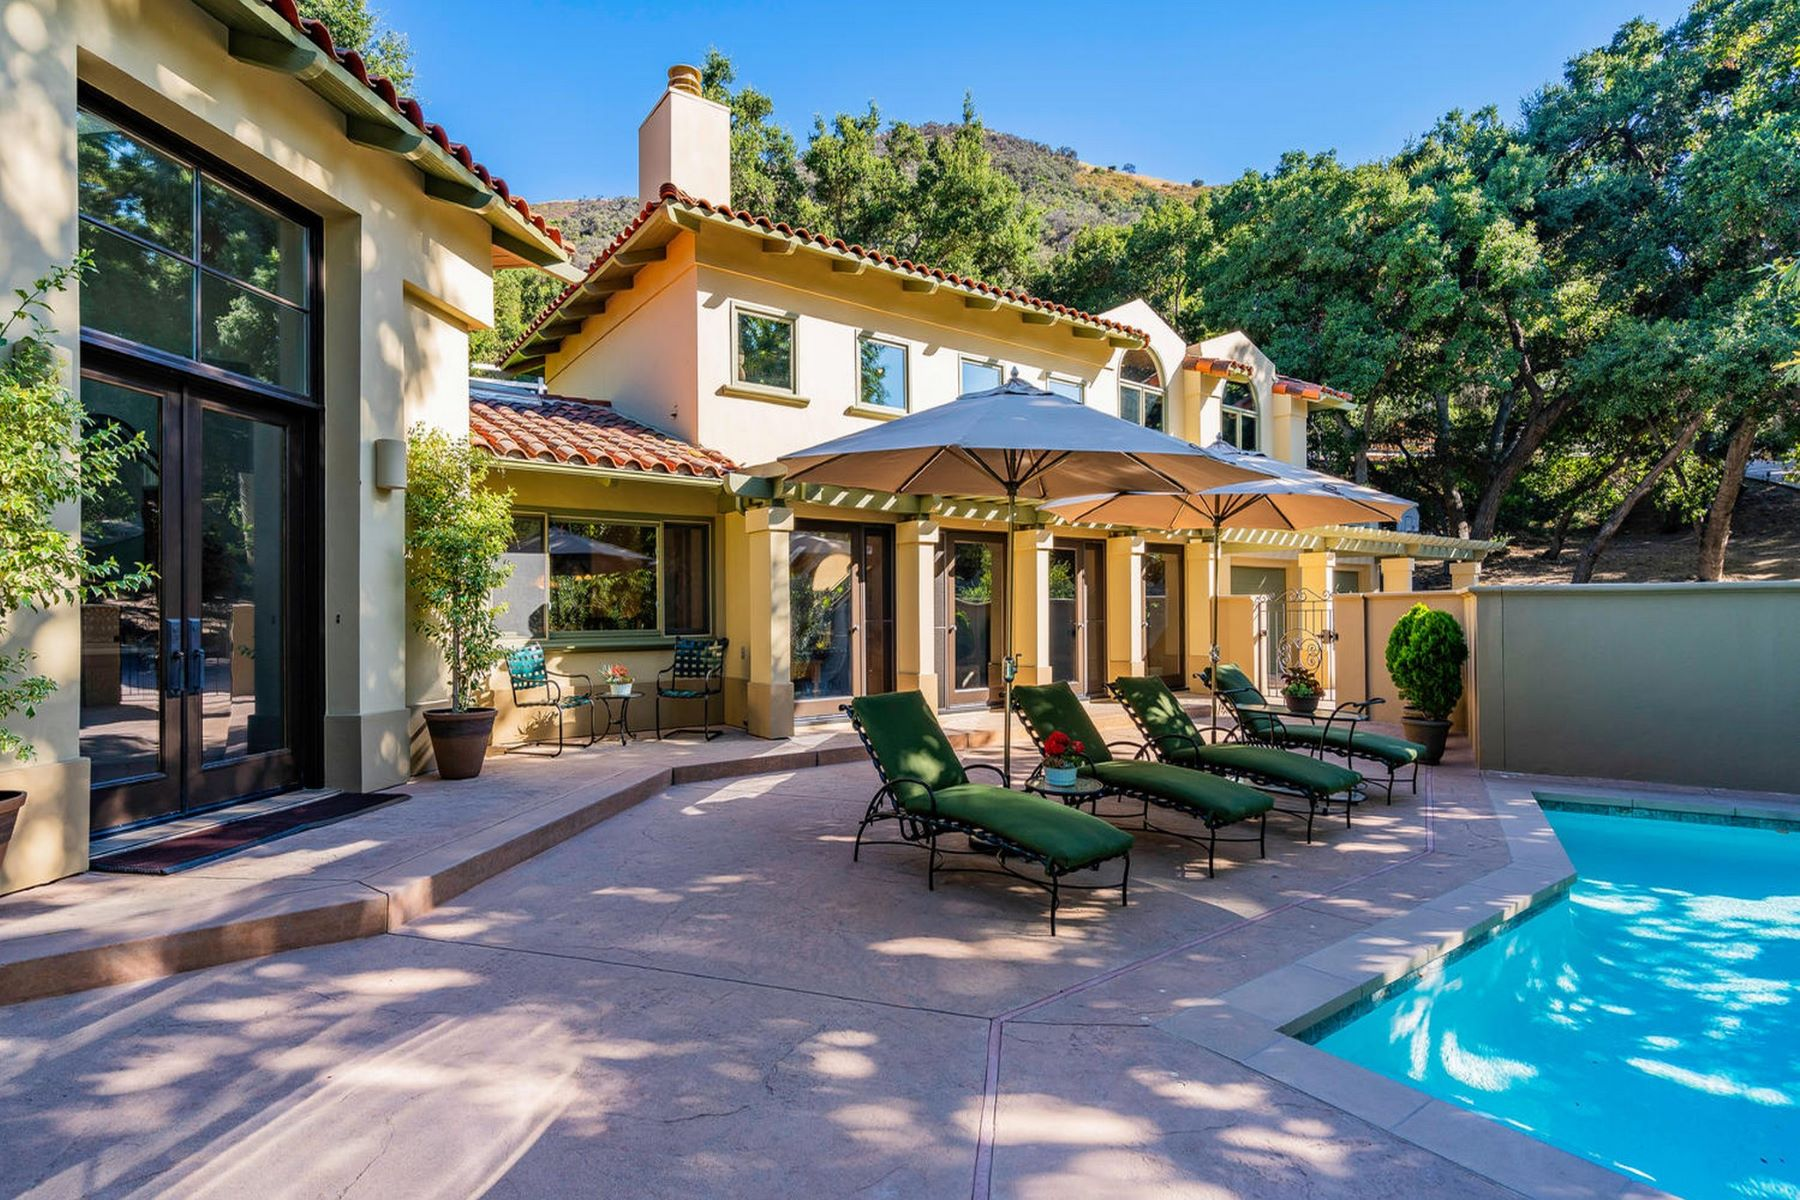 Single Family Homes for Sale at 153 Bell Canyon Road Bell Canyon, California 91307 United States